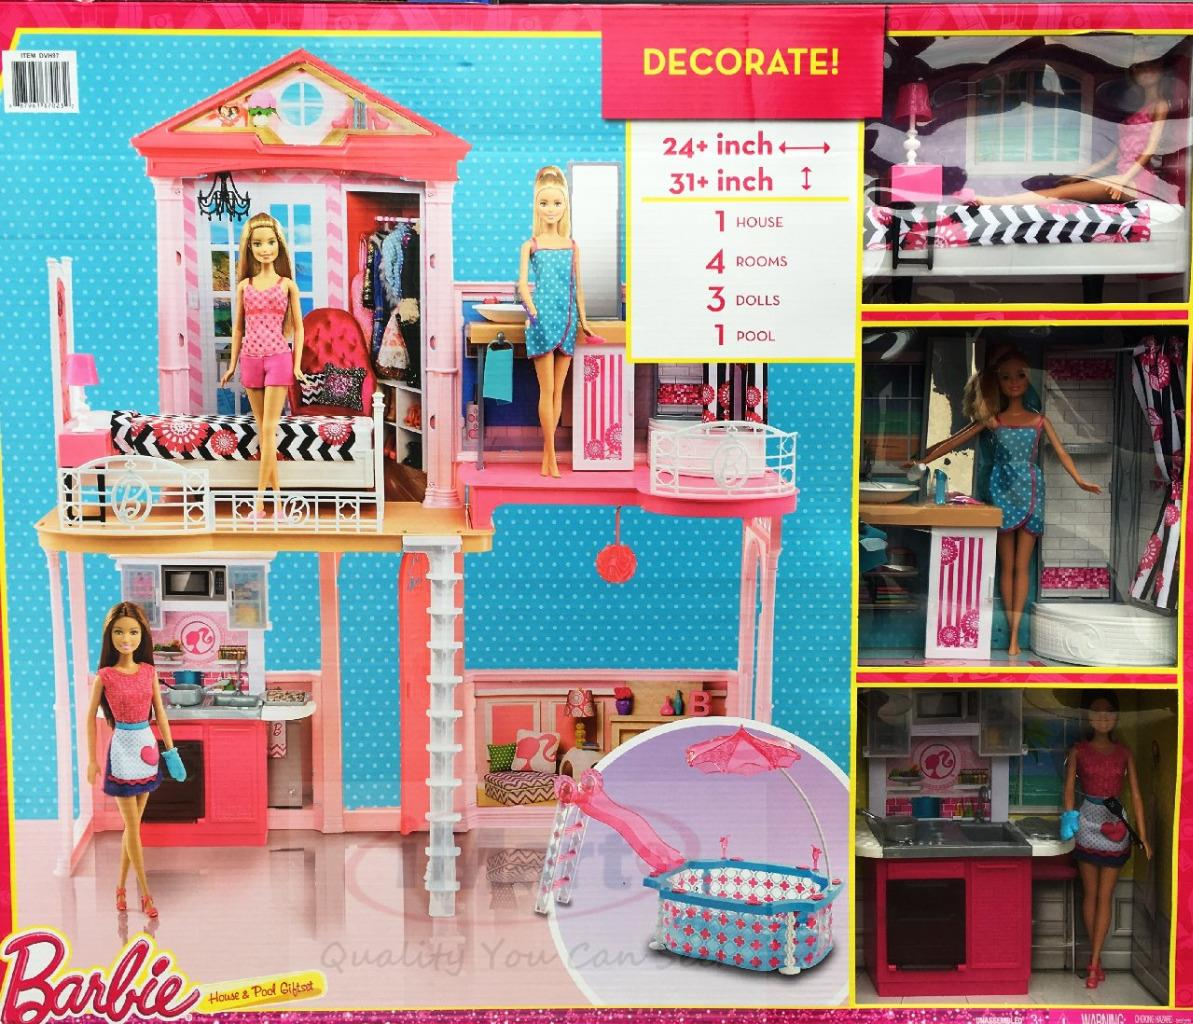 Barbie house with glam swimming pool includes 3 barbie dolls kids girls toys new 887961370232 ebay for Barbie doll house with swimming pool